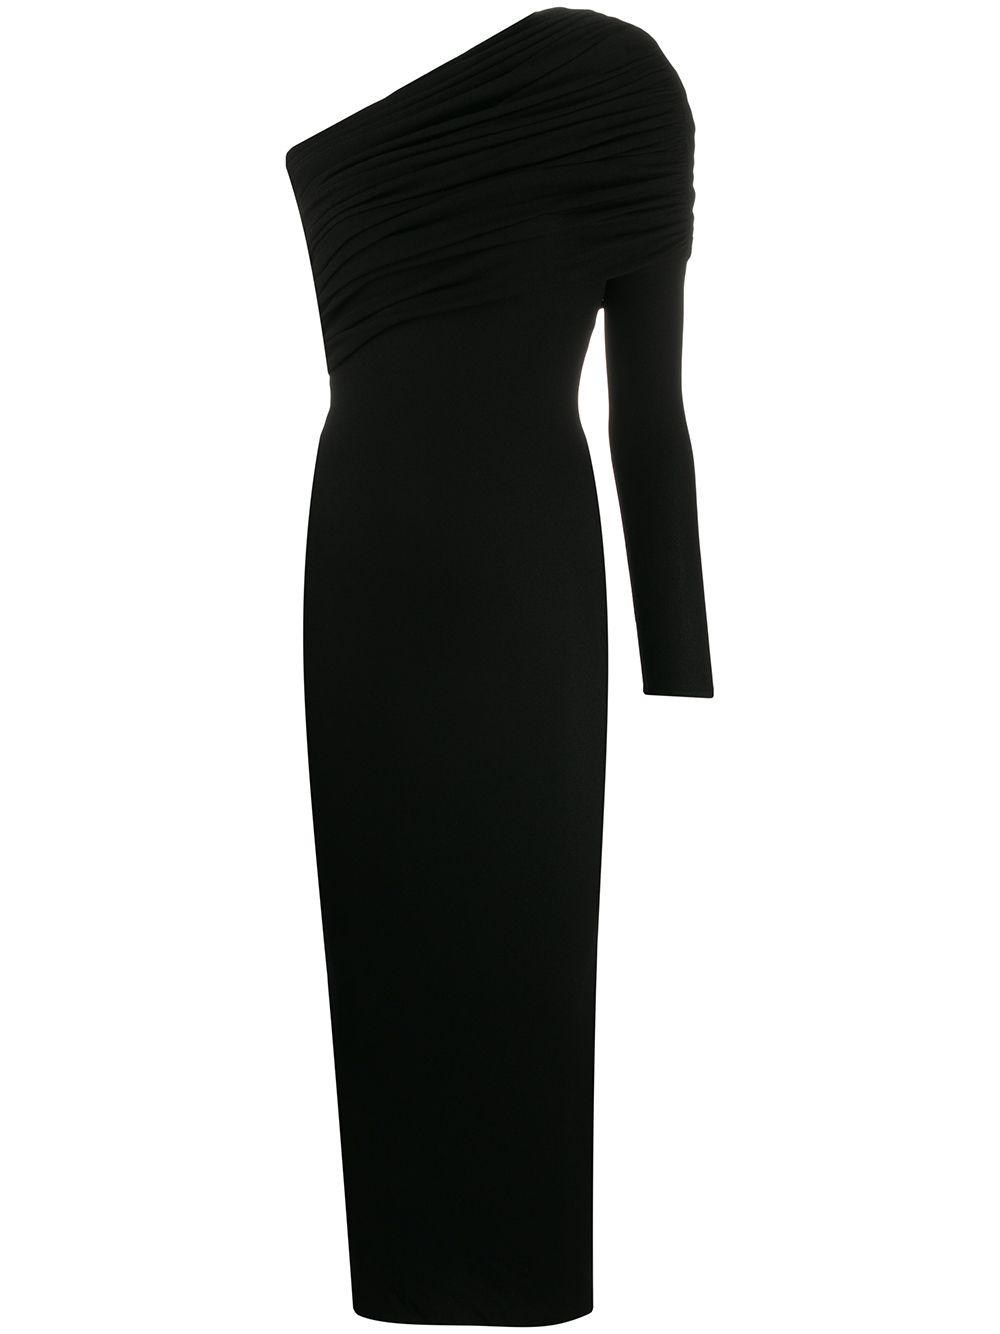 Ruched One Shoulder Jersey Dress